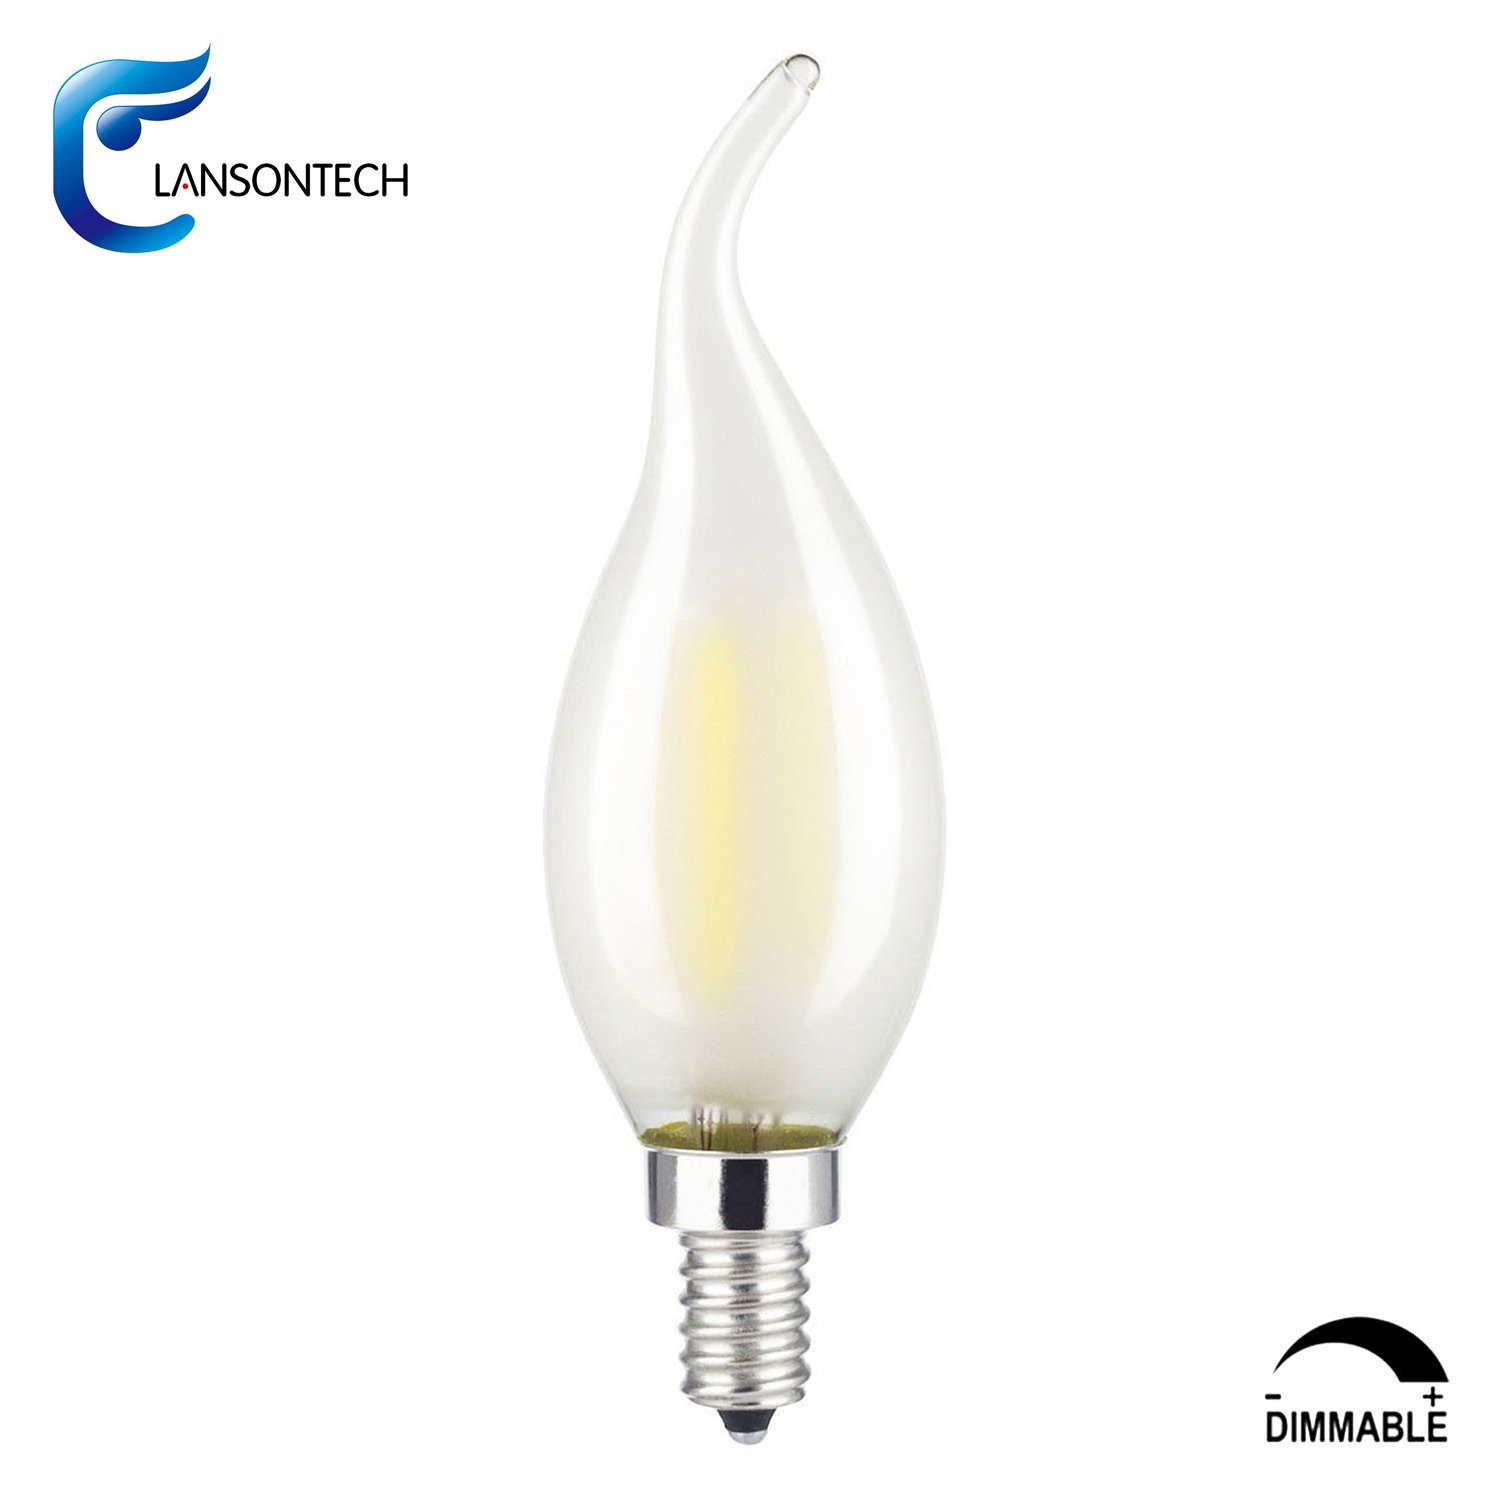 Lansontech 6 Watt Frosted Led Filament Candelabra Light Bulb Dimmable Warm White 2700k 60 Incandescent Replacement 600 Lumens E12 Base